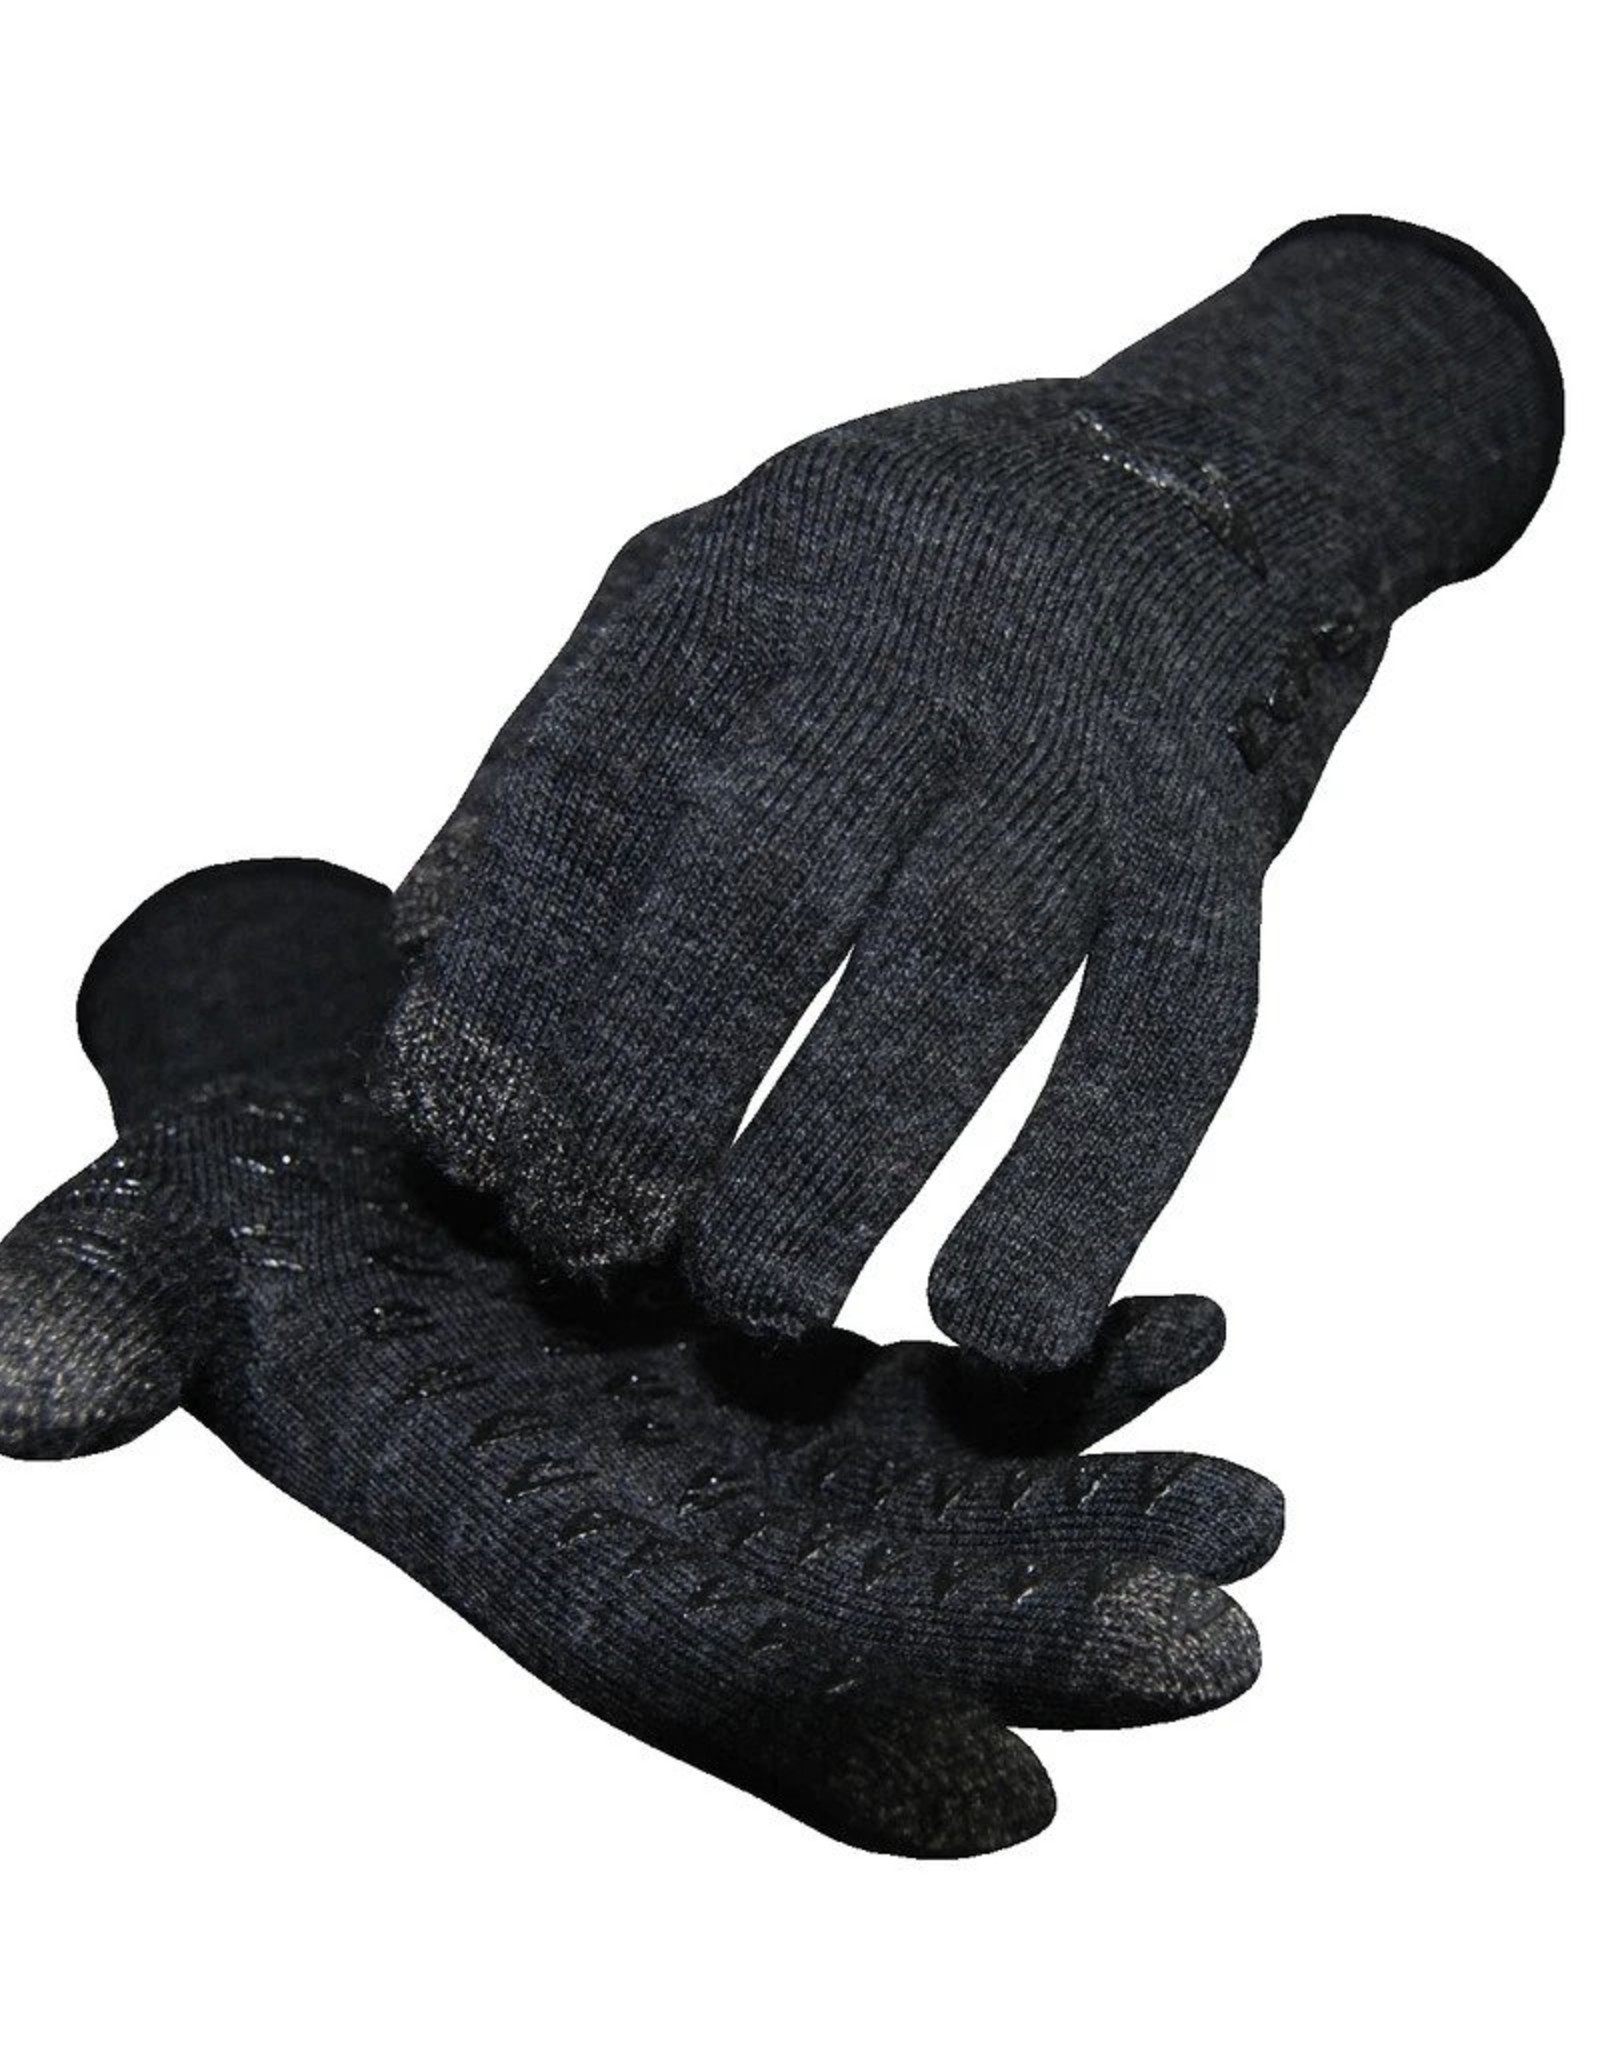 DeFeet DeFeet Duraglove Wool - Charcoal